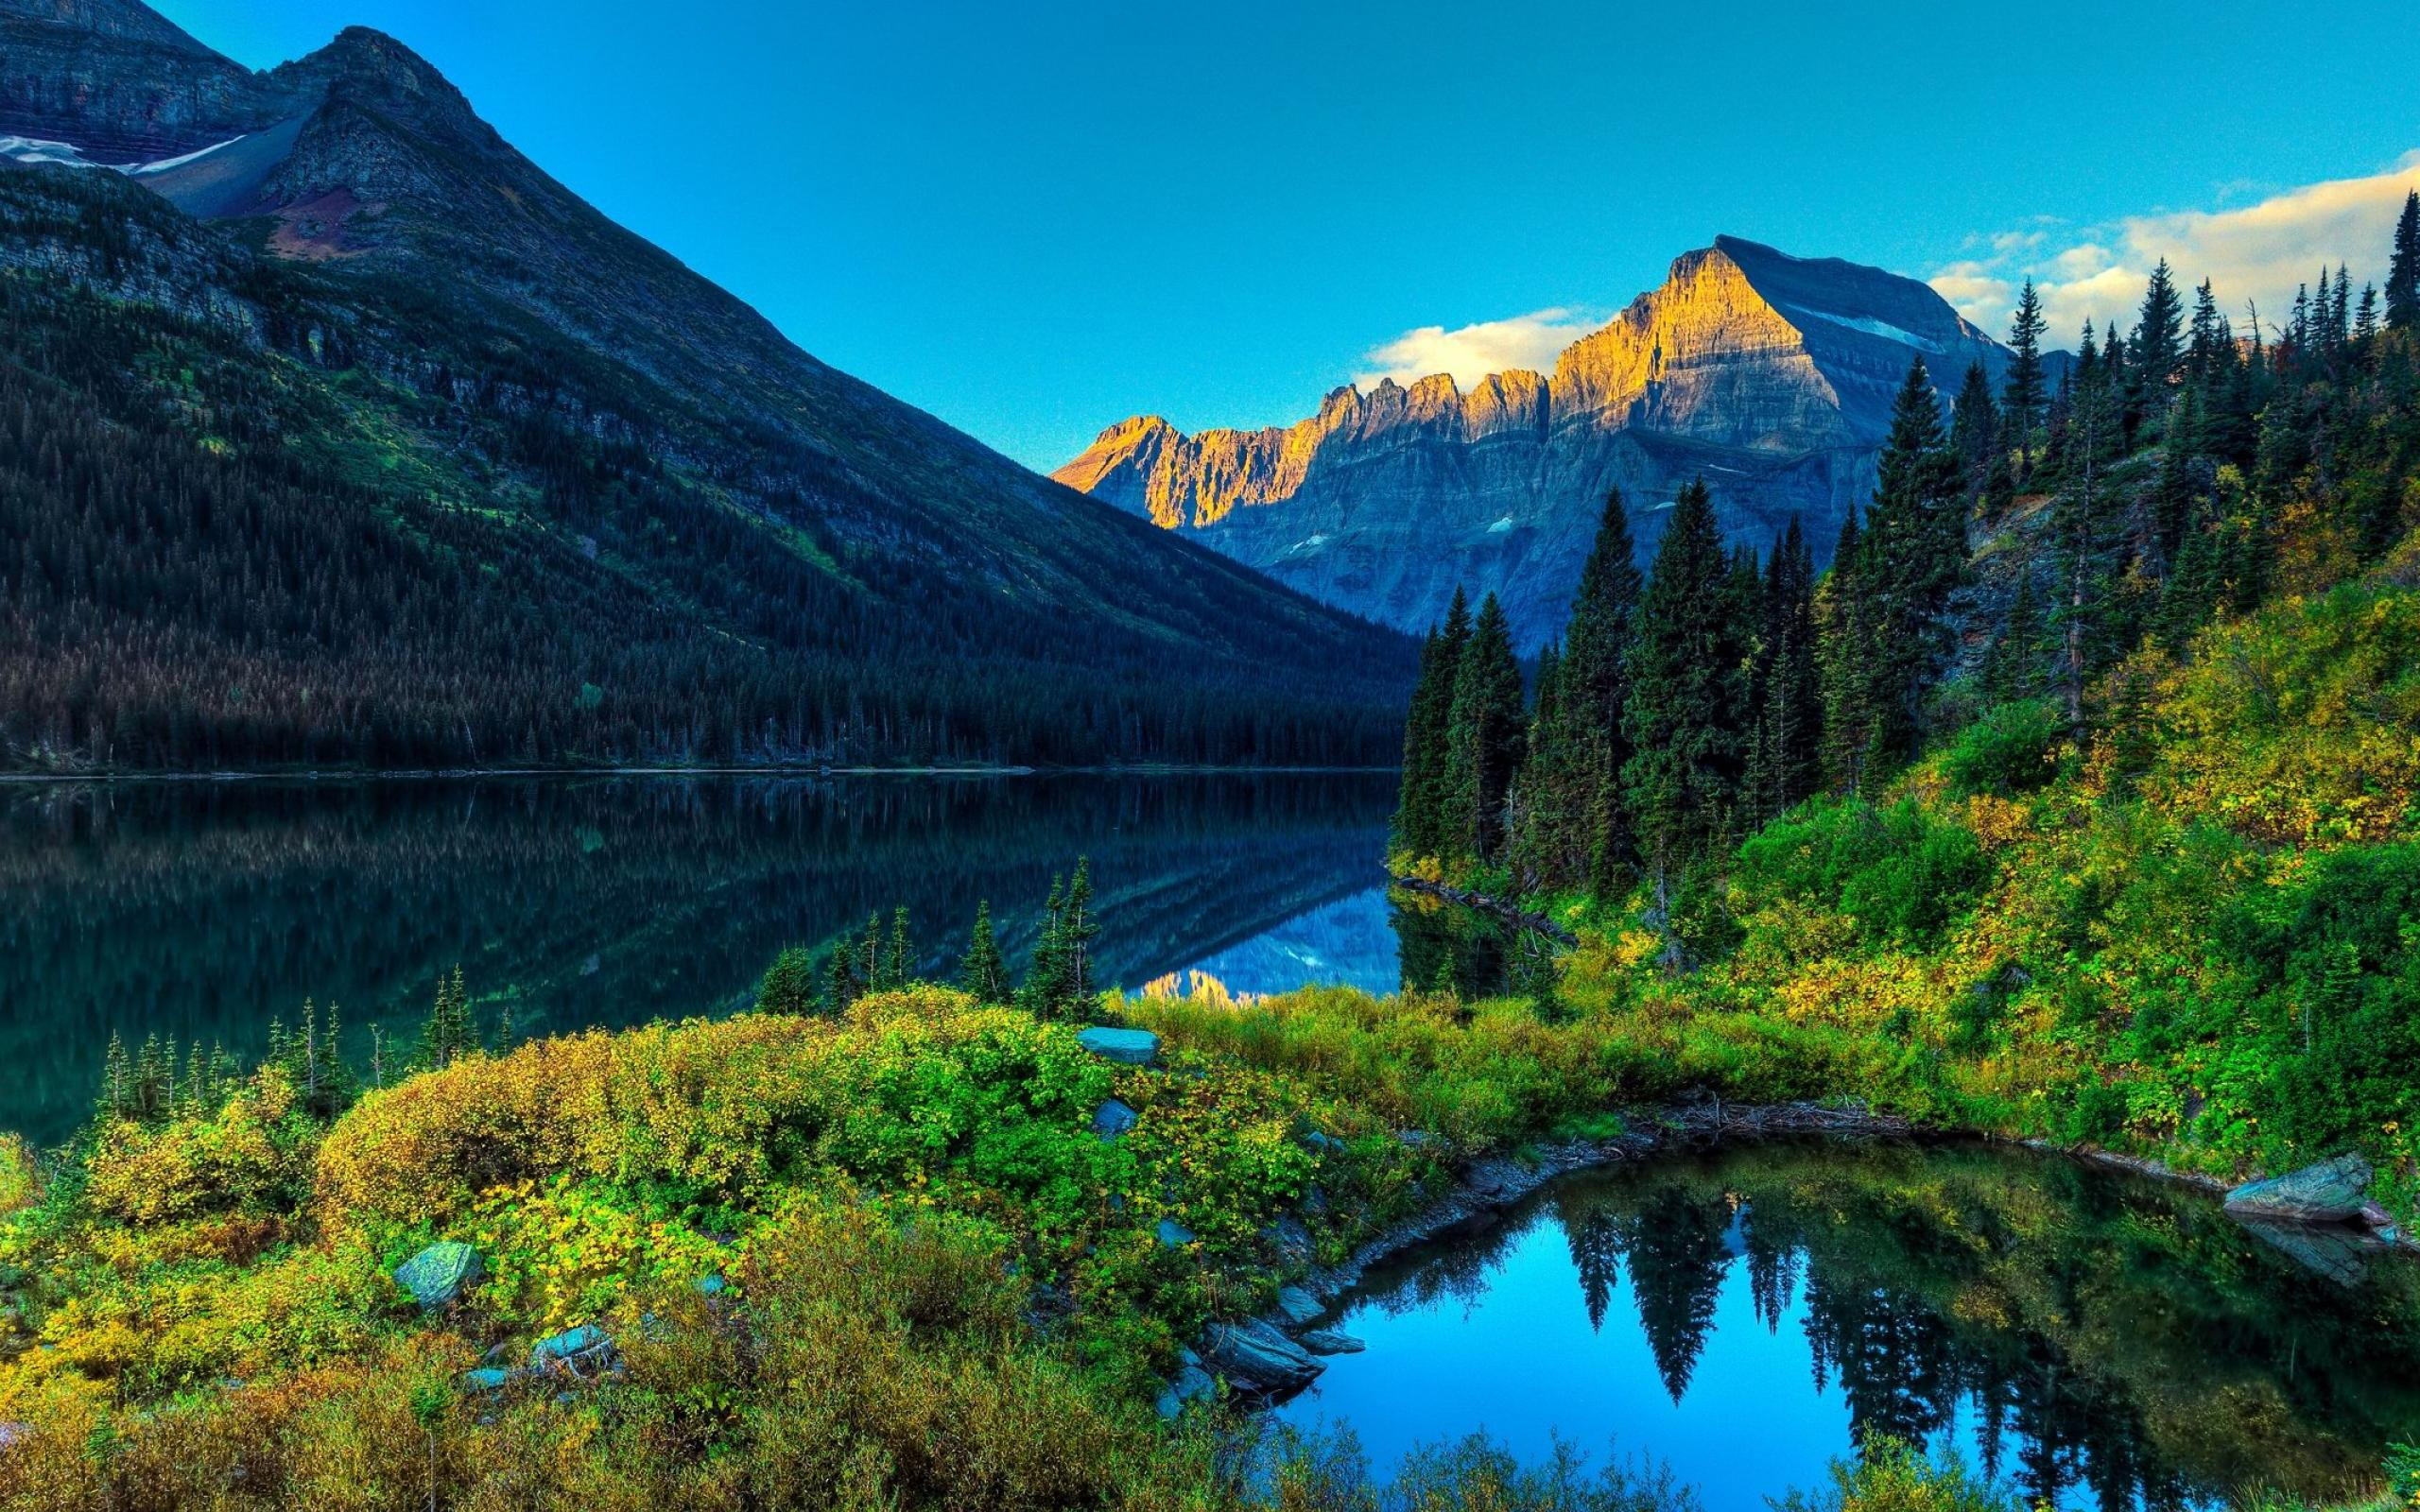 Wallpaper, free landscape Wallpapers images, pictures download